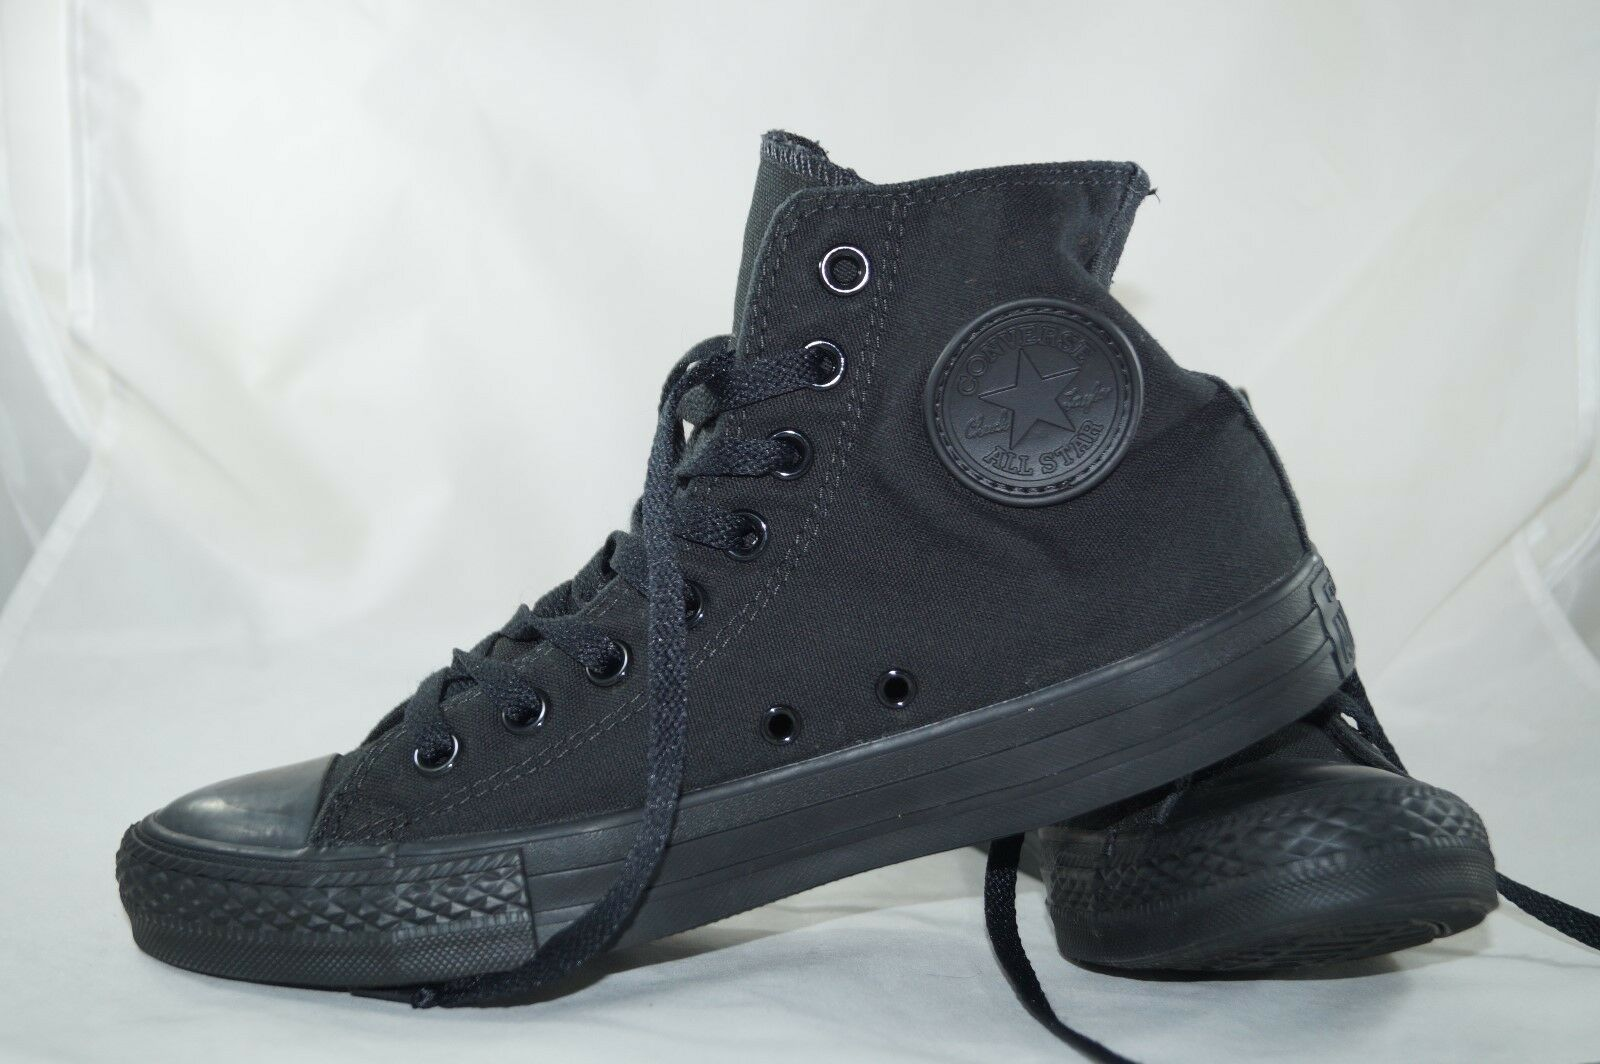 Converse Chucks Tops All Star High Tops Chucks Gr: 41 Schwarz 633ee7